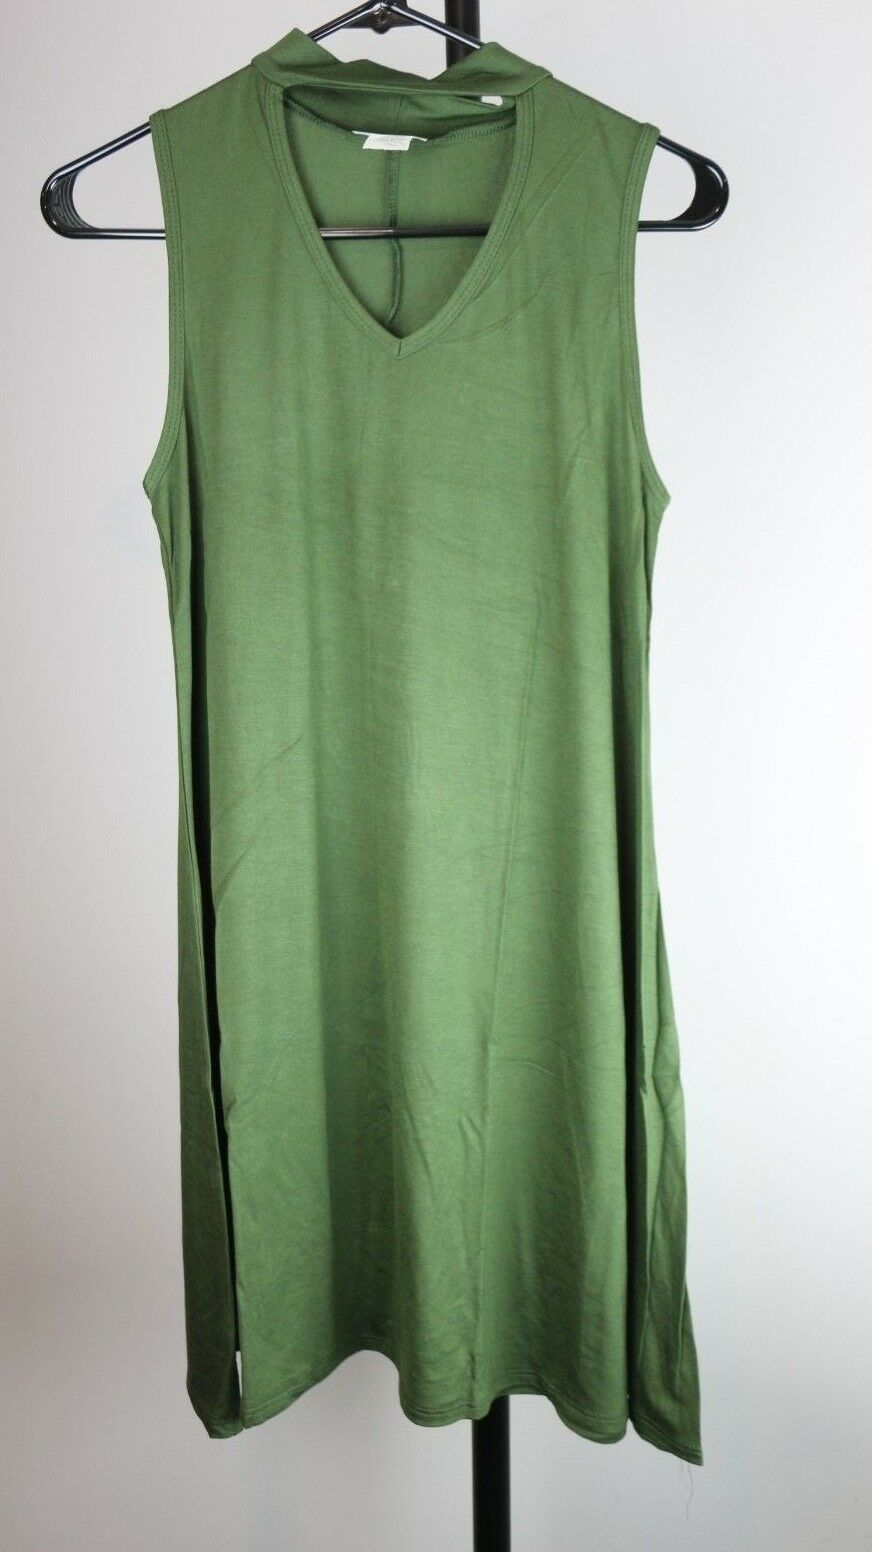 Clementine Women's Petite Plus Sleeveless Chill Dress Size Large L Dark Green - Fazoom